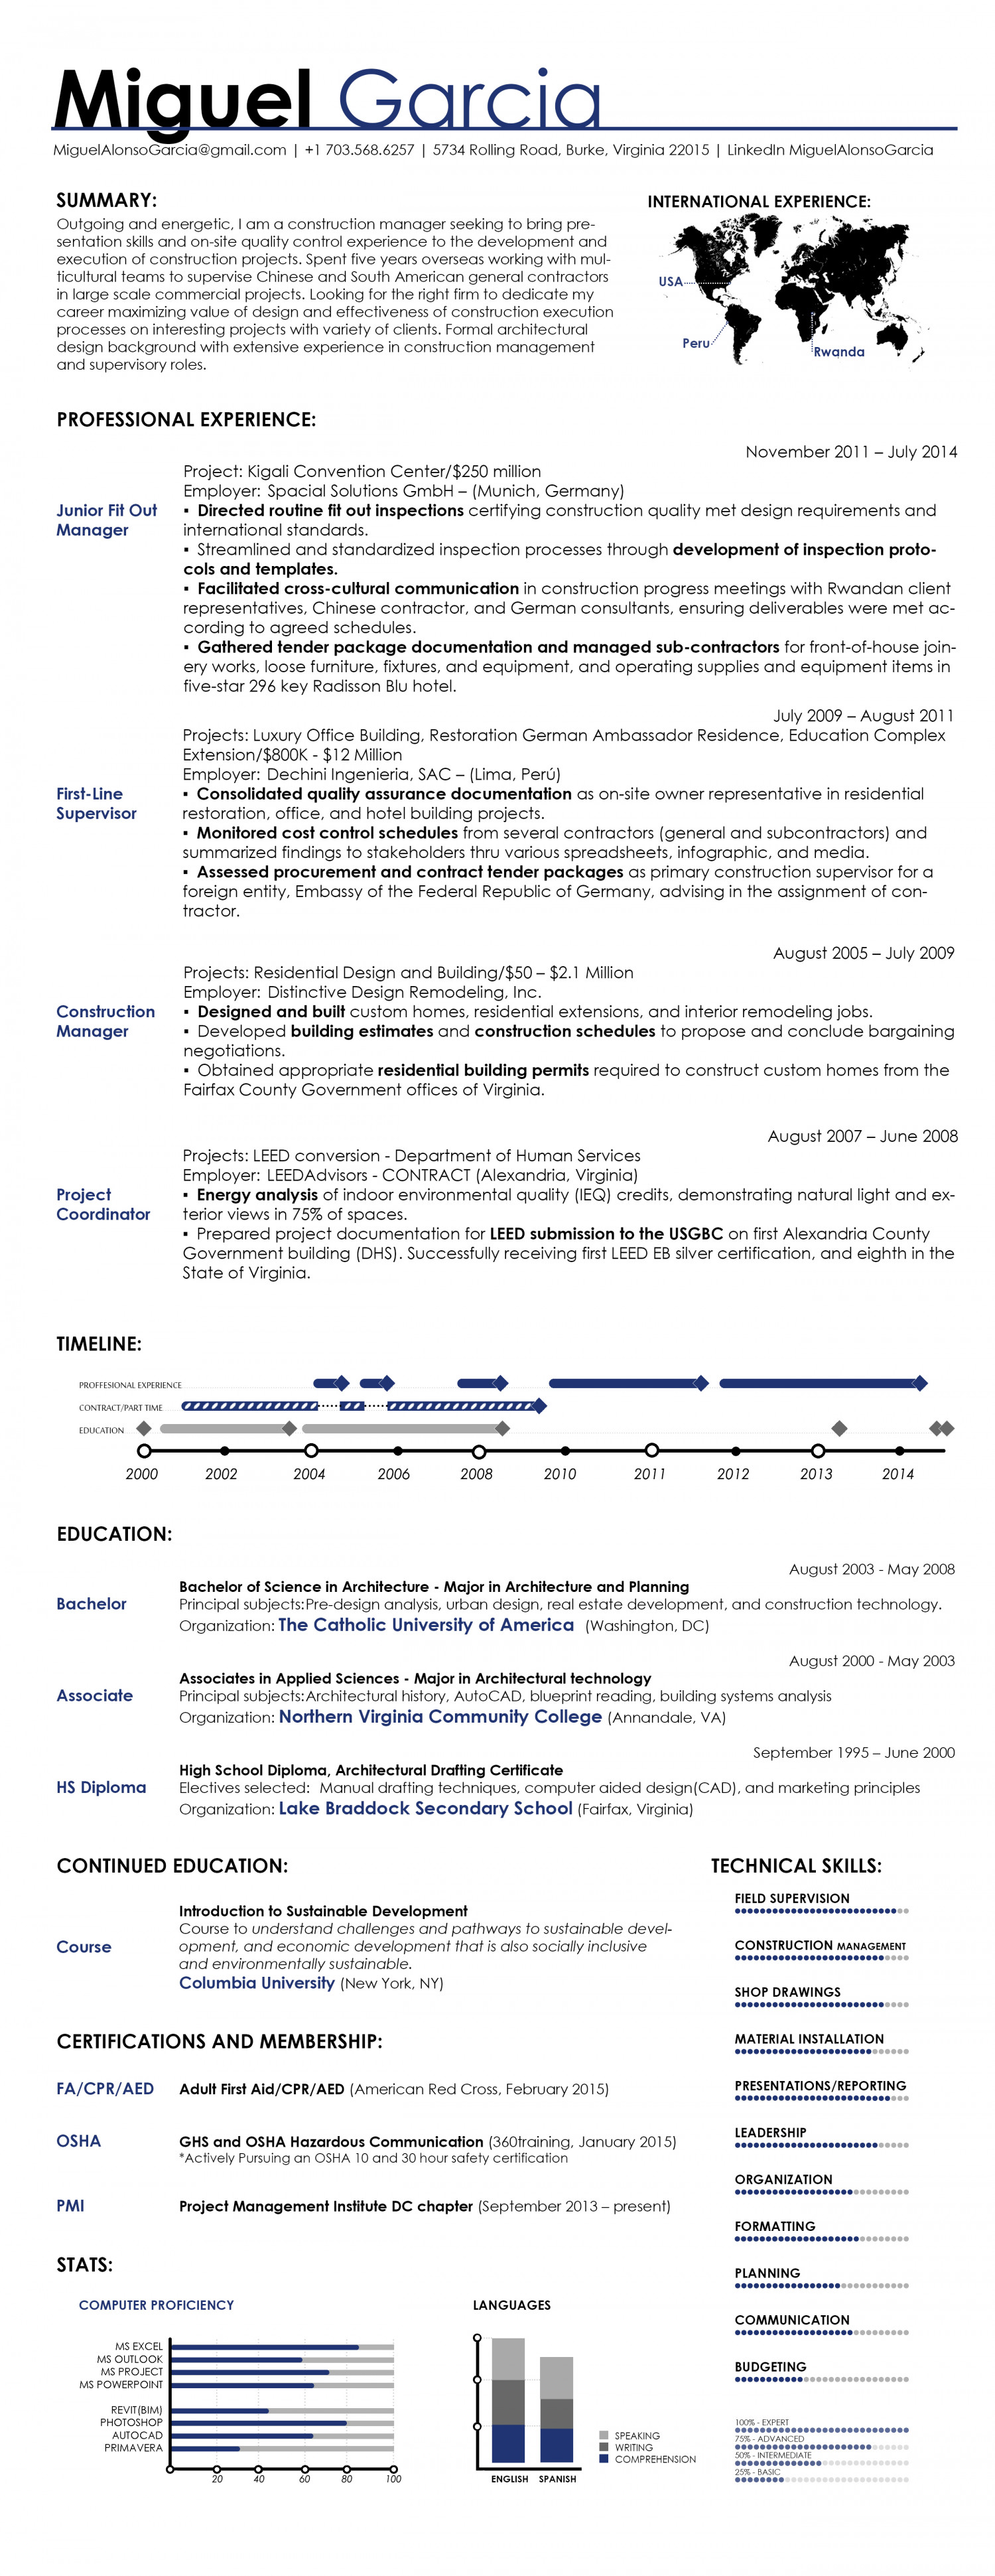 MGarcia_Resume Infographic